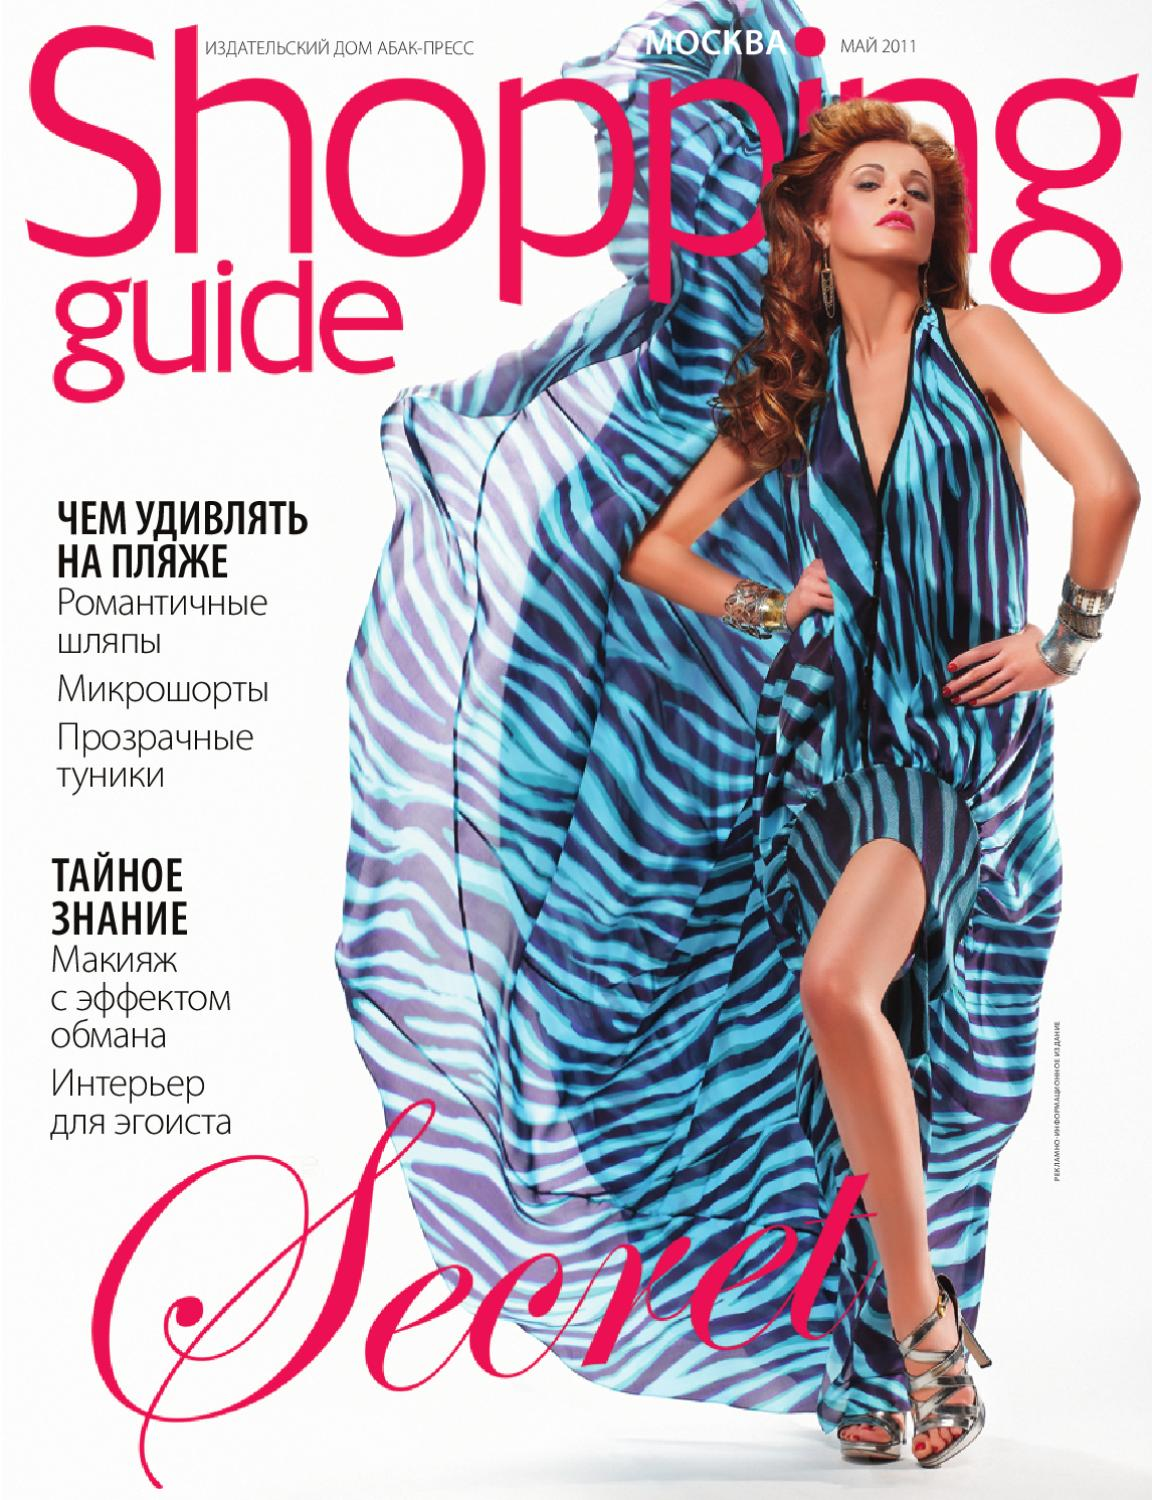 05e4914549b Shopping Guide 2011-05 by ABAK-Press - issuu